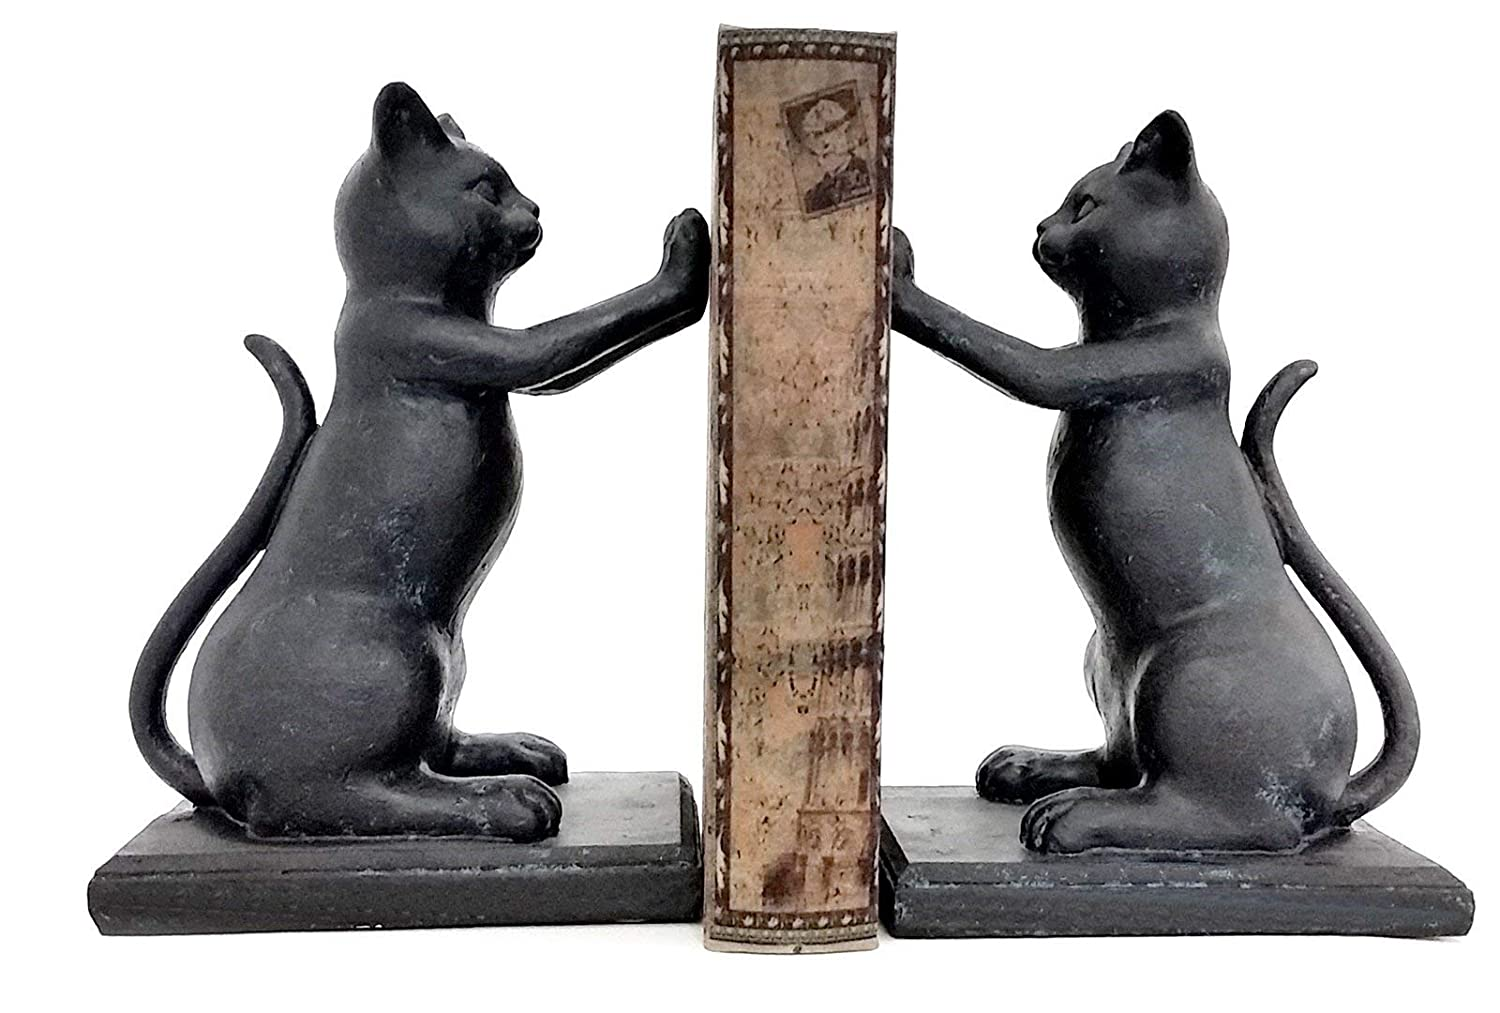 Bellaa 23033 Feline Shelf Decor Decorative Cat Bookend Set for Cat Lovers Black Playful Kitty High Five